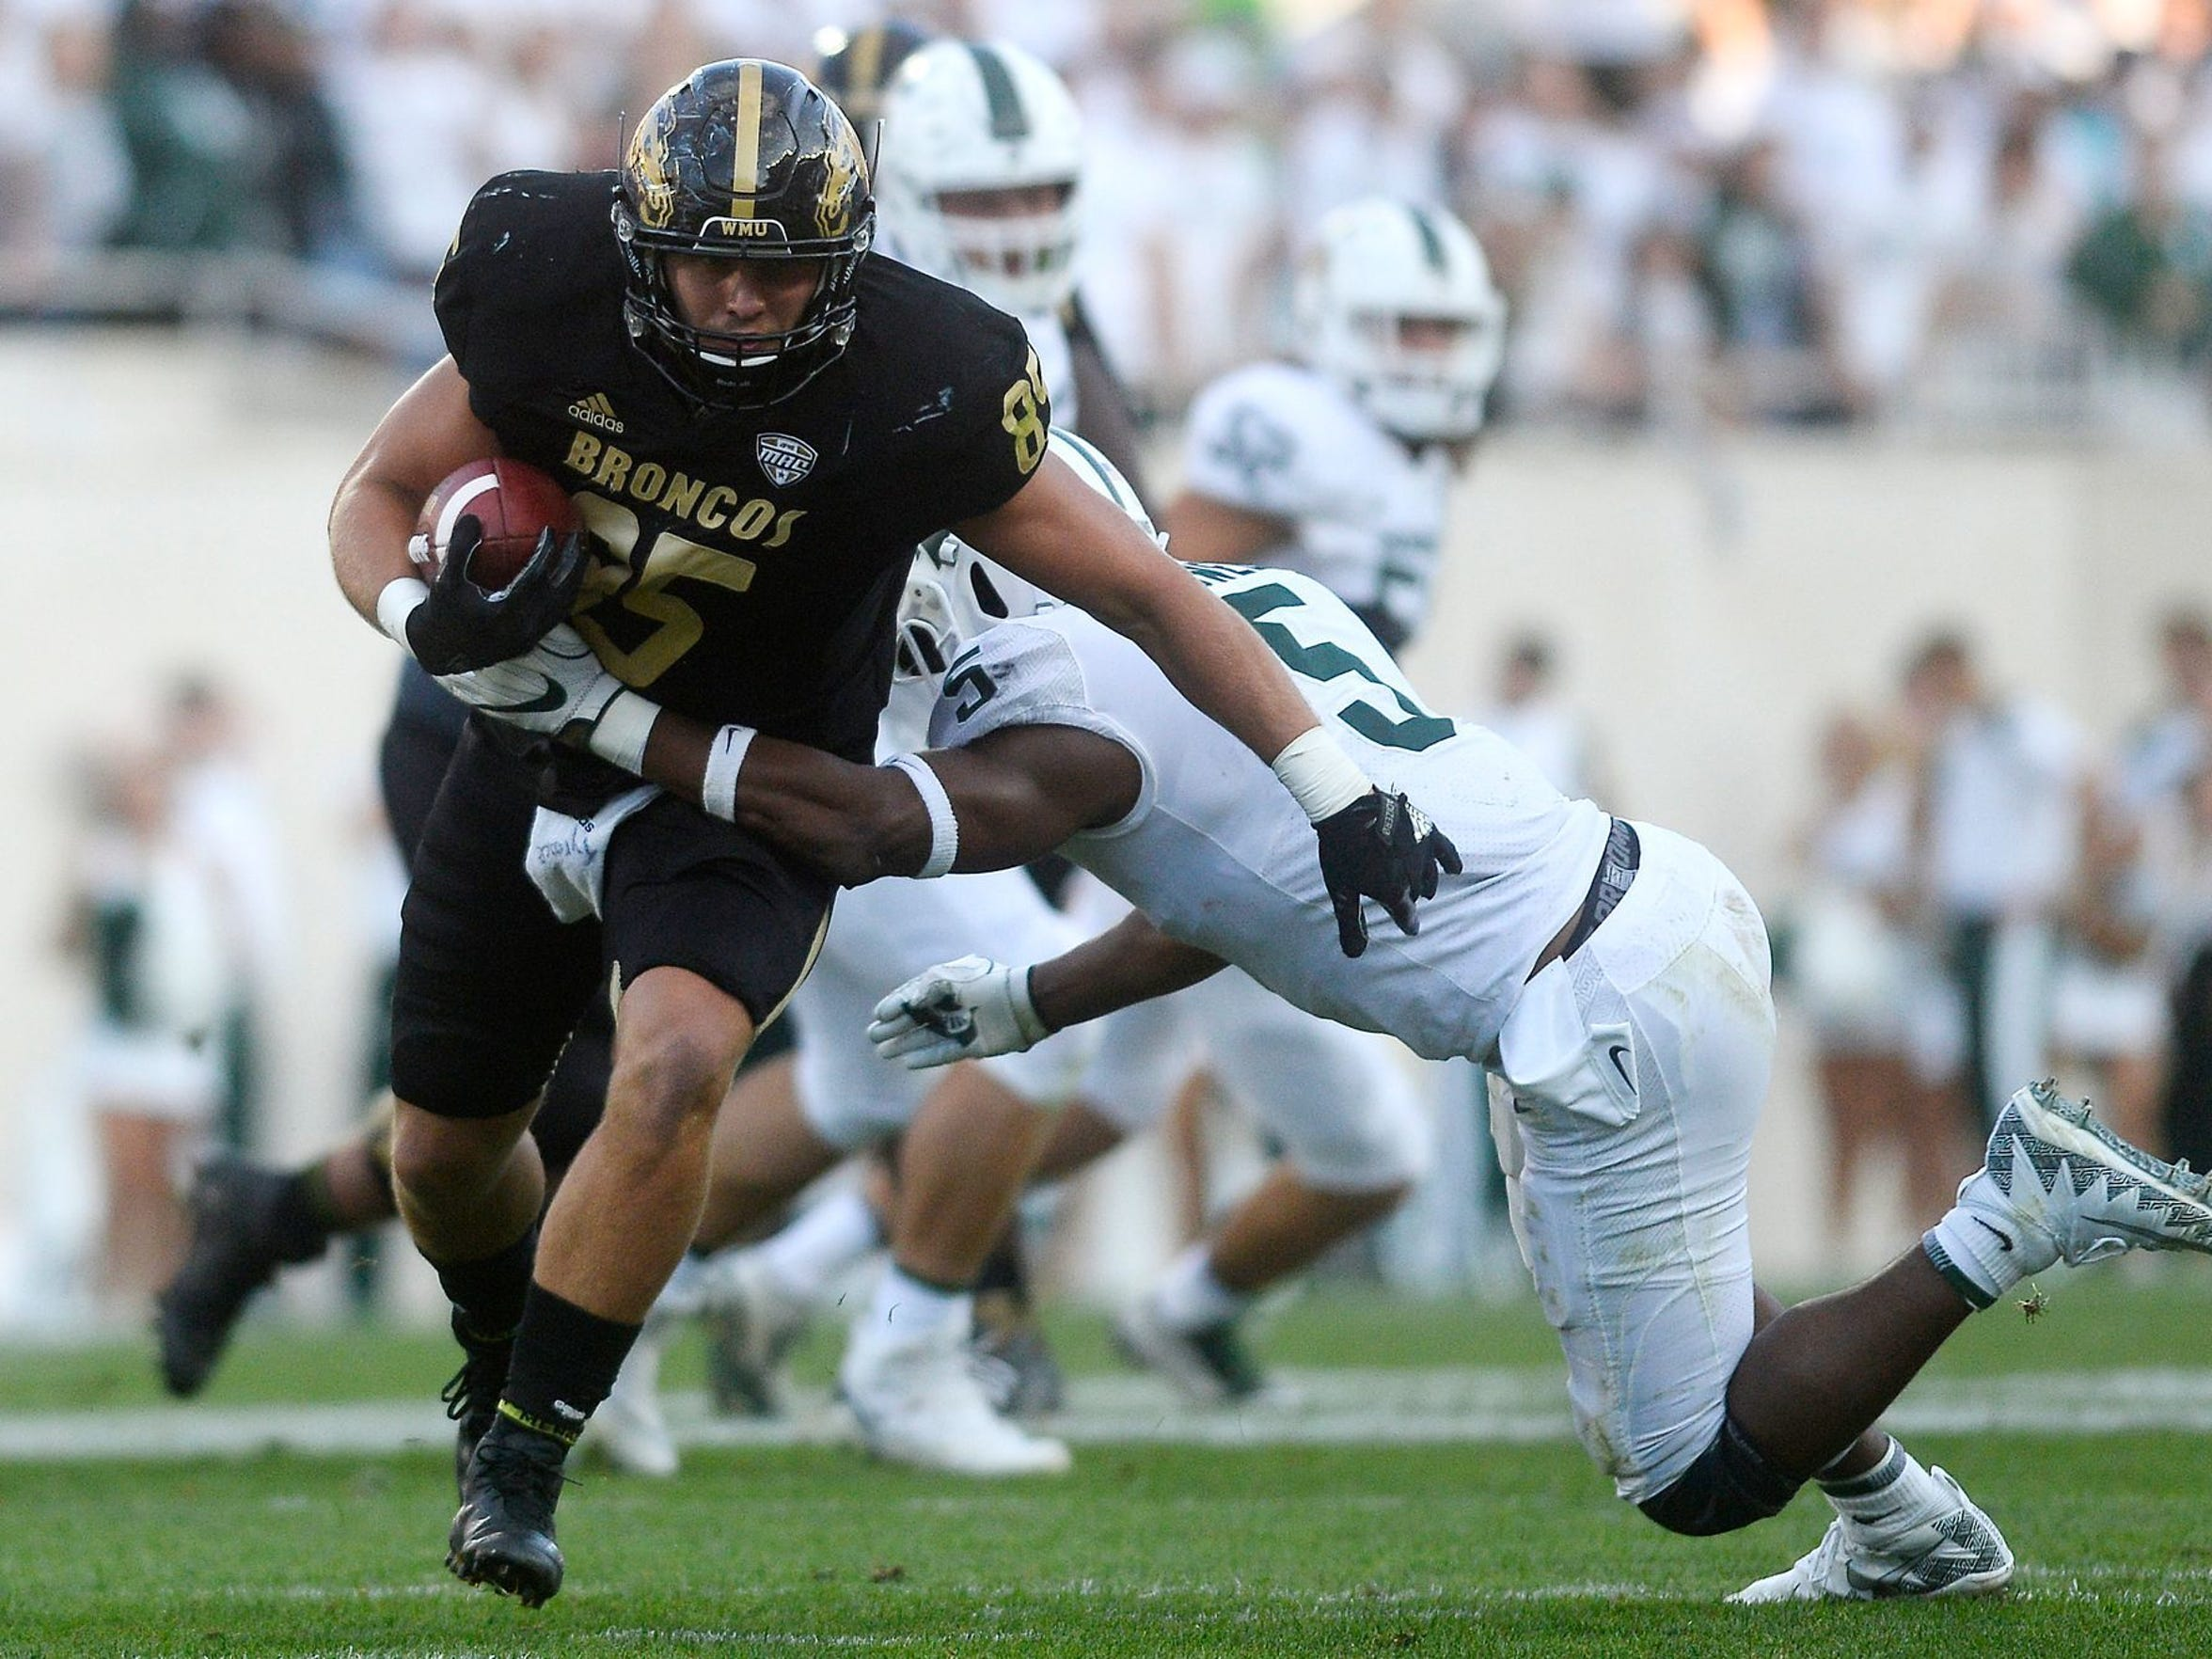 Western Michigan tight end Donnie Ernsberger (85) catches a pass as Michigan State's Andrew Dowell closes in during the fourth quarter on Saturday, Sept. 9, 2017, at Spartan Stadium in East Lansing.